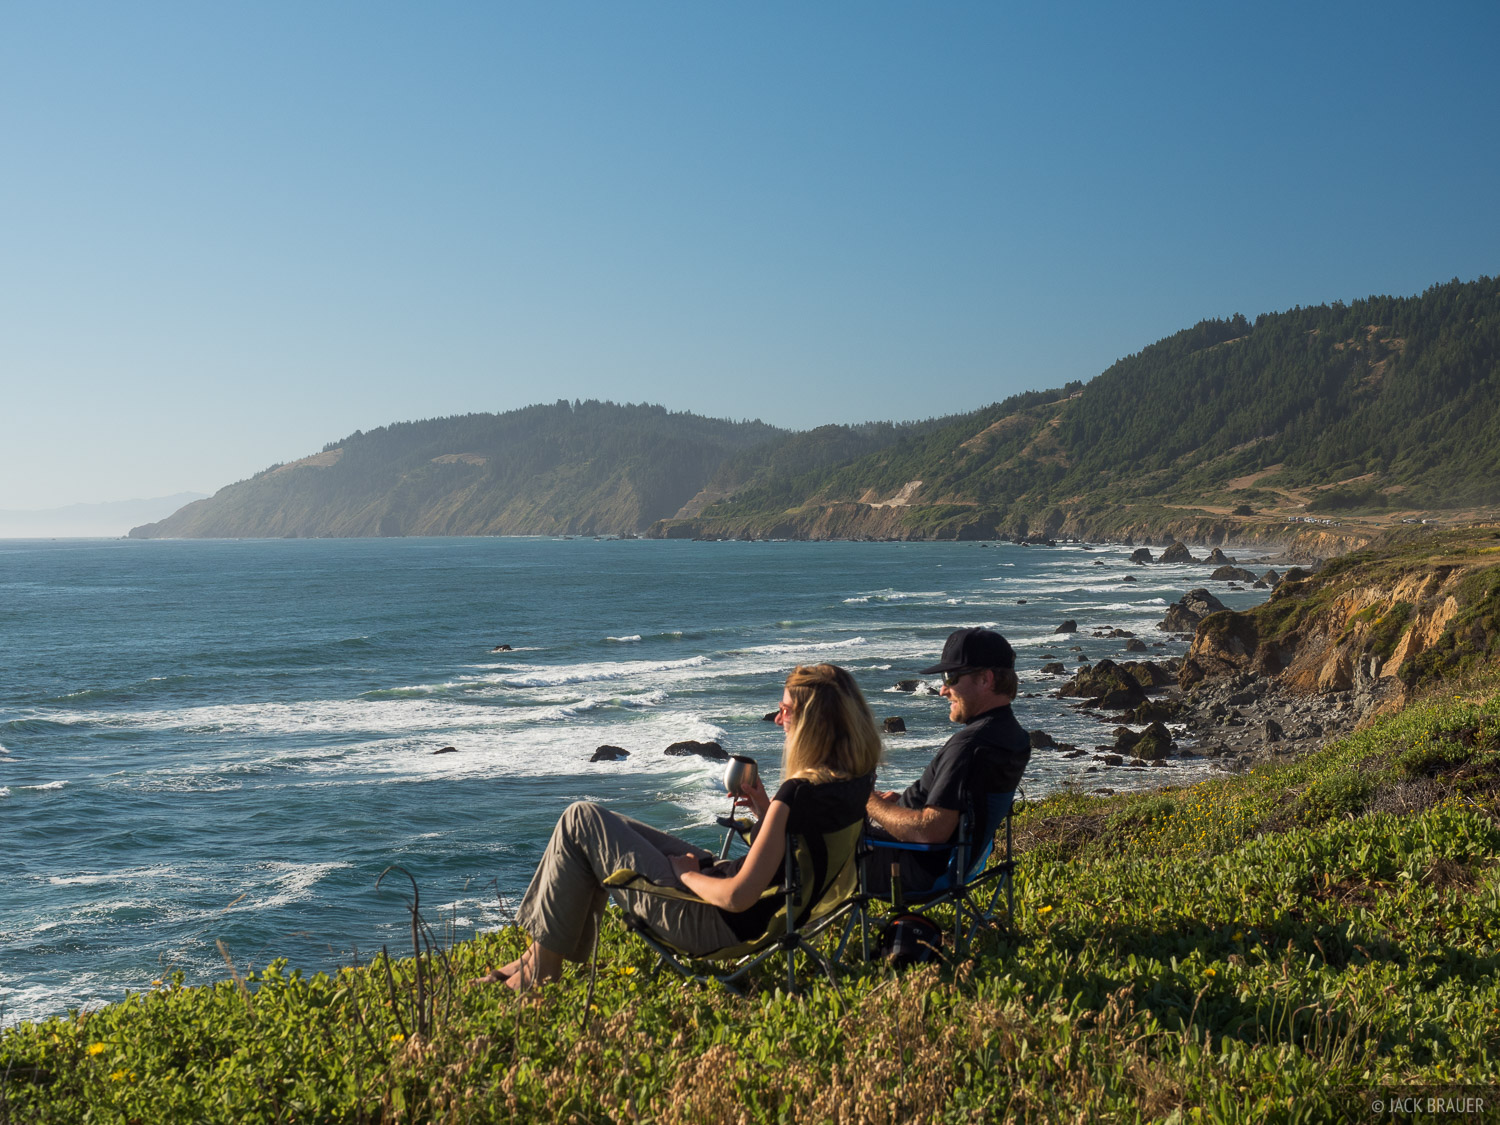 A fantastic campground overlooking the Pacific Ocean at Westport-Union Landing State Beach in northern California.